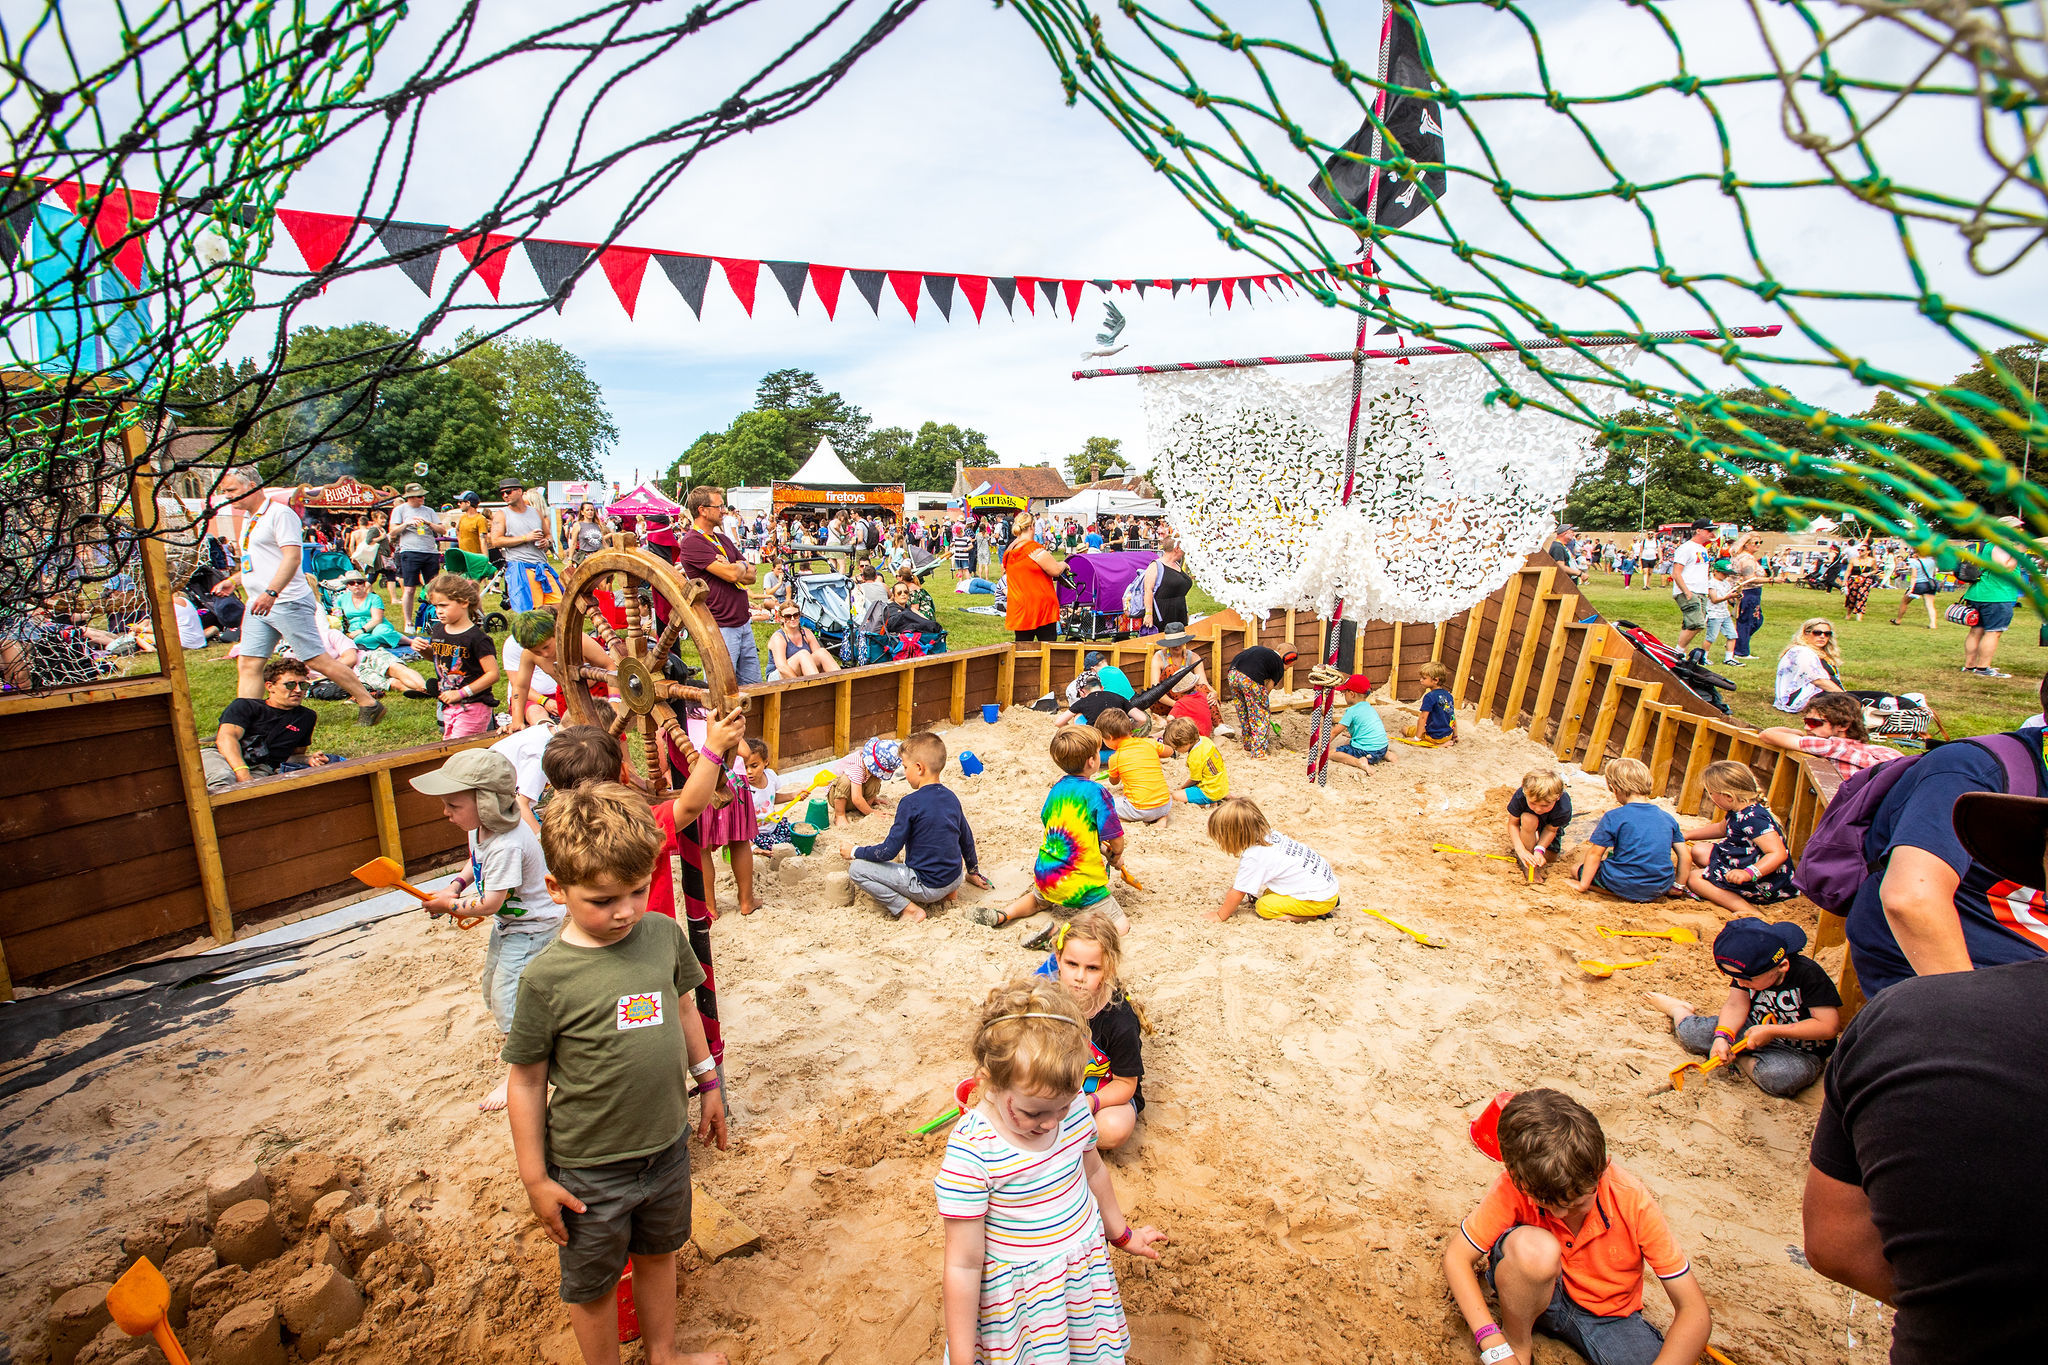 Pirate Sandpit image